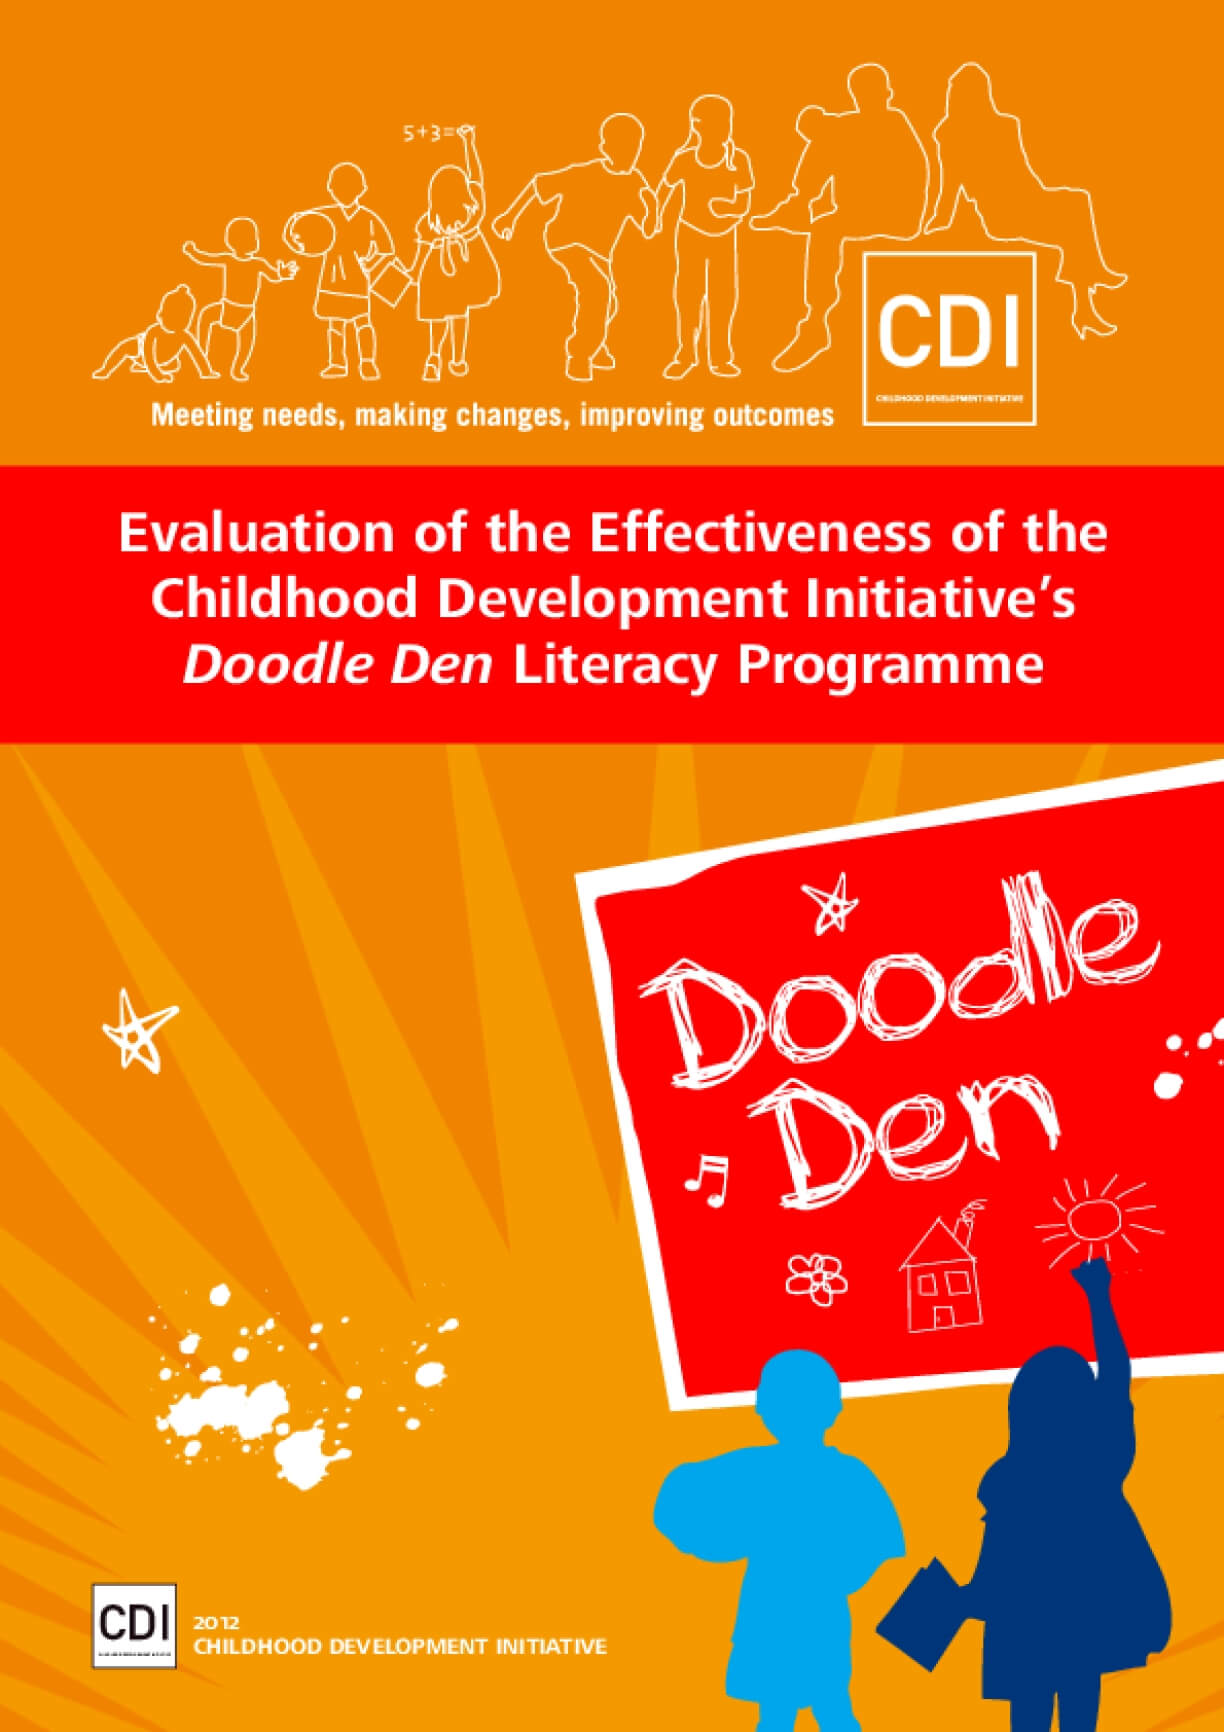 Evaluation of the Effectiveness of the Childhood Development Initiative's Doodle Den Literacy Programme